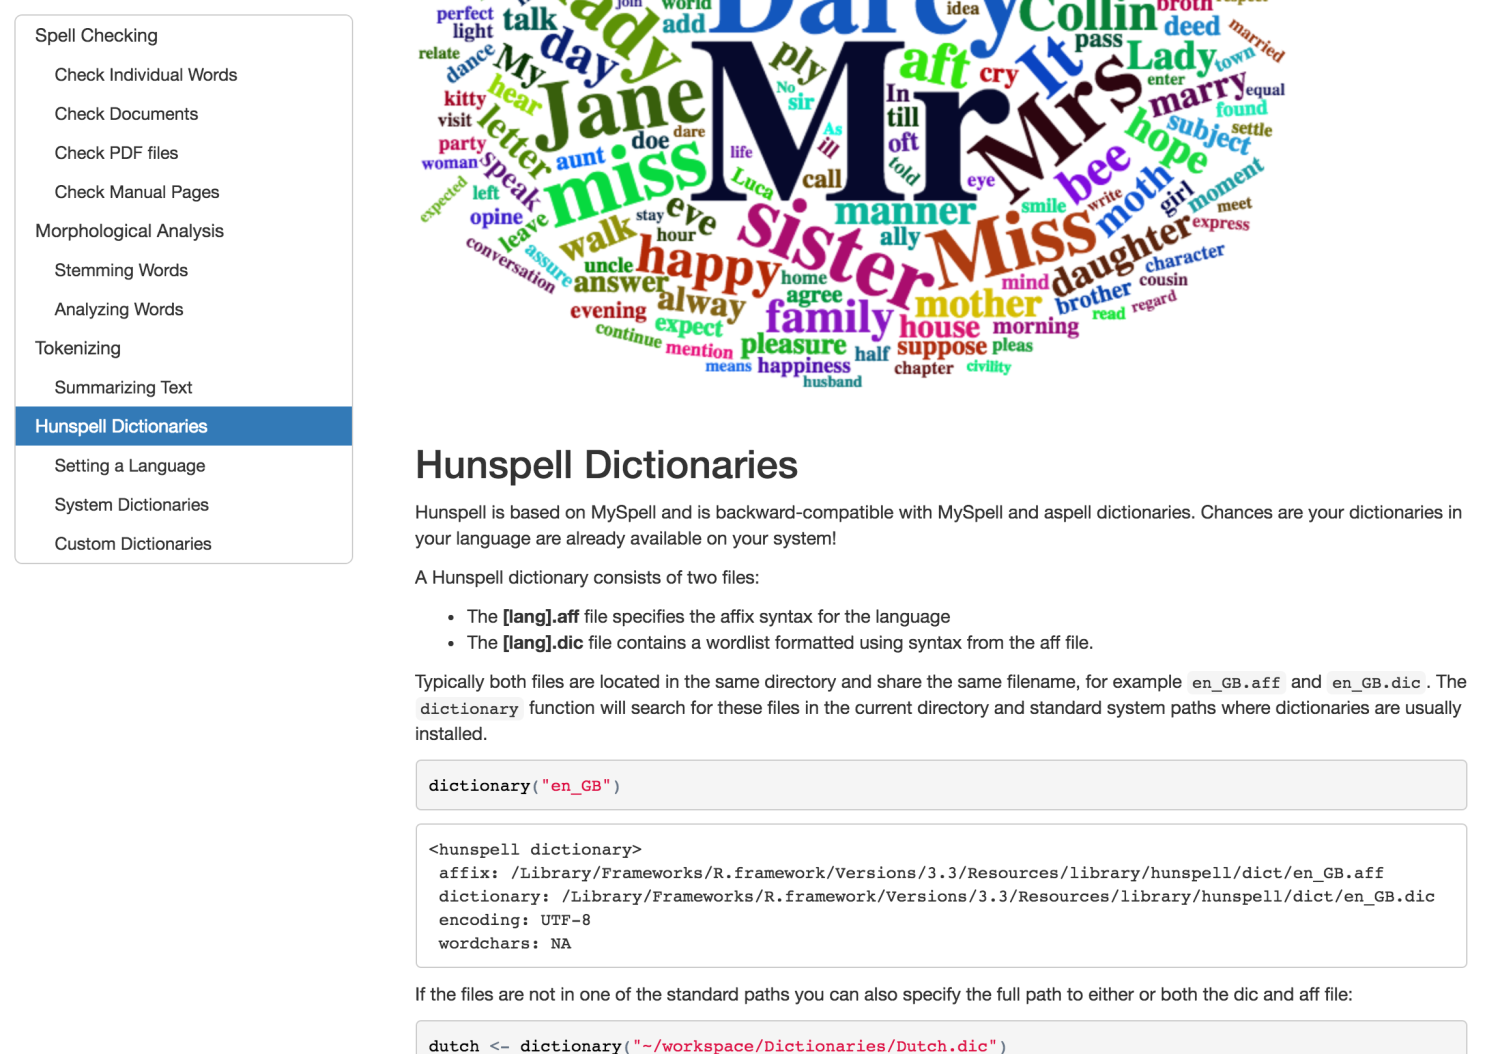 Hunspell 2.0: High-Performance Stemmer, Tokenizer, and Spell Checker for R